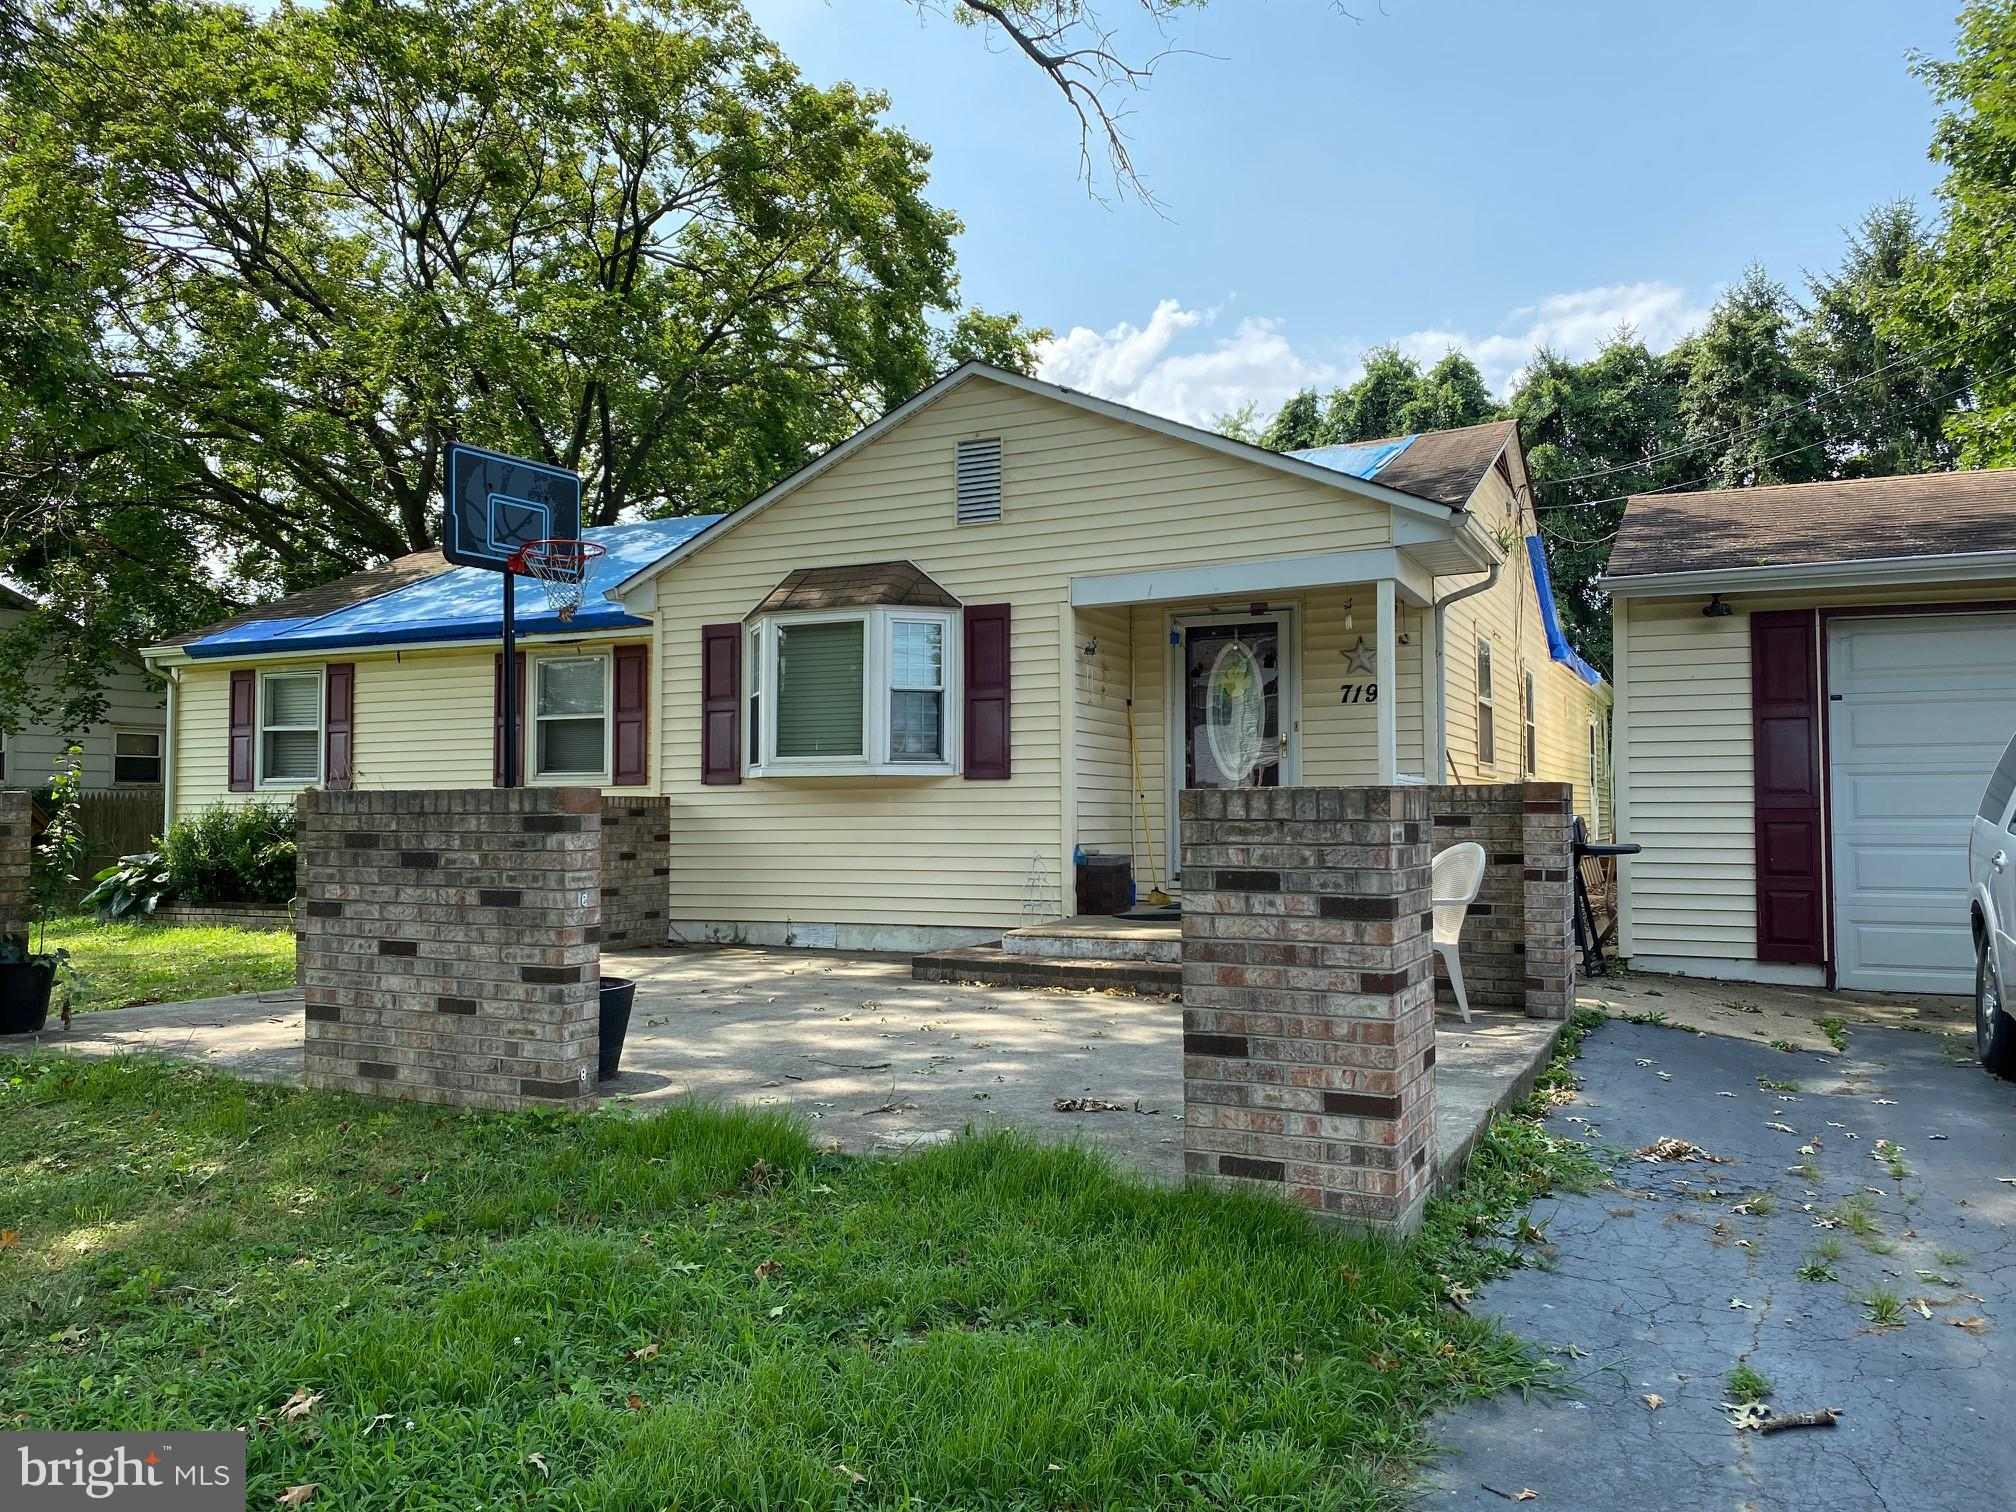 """This is a short sale in need of major renovations due to issues with the roof. Property being sold """""""